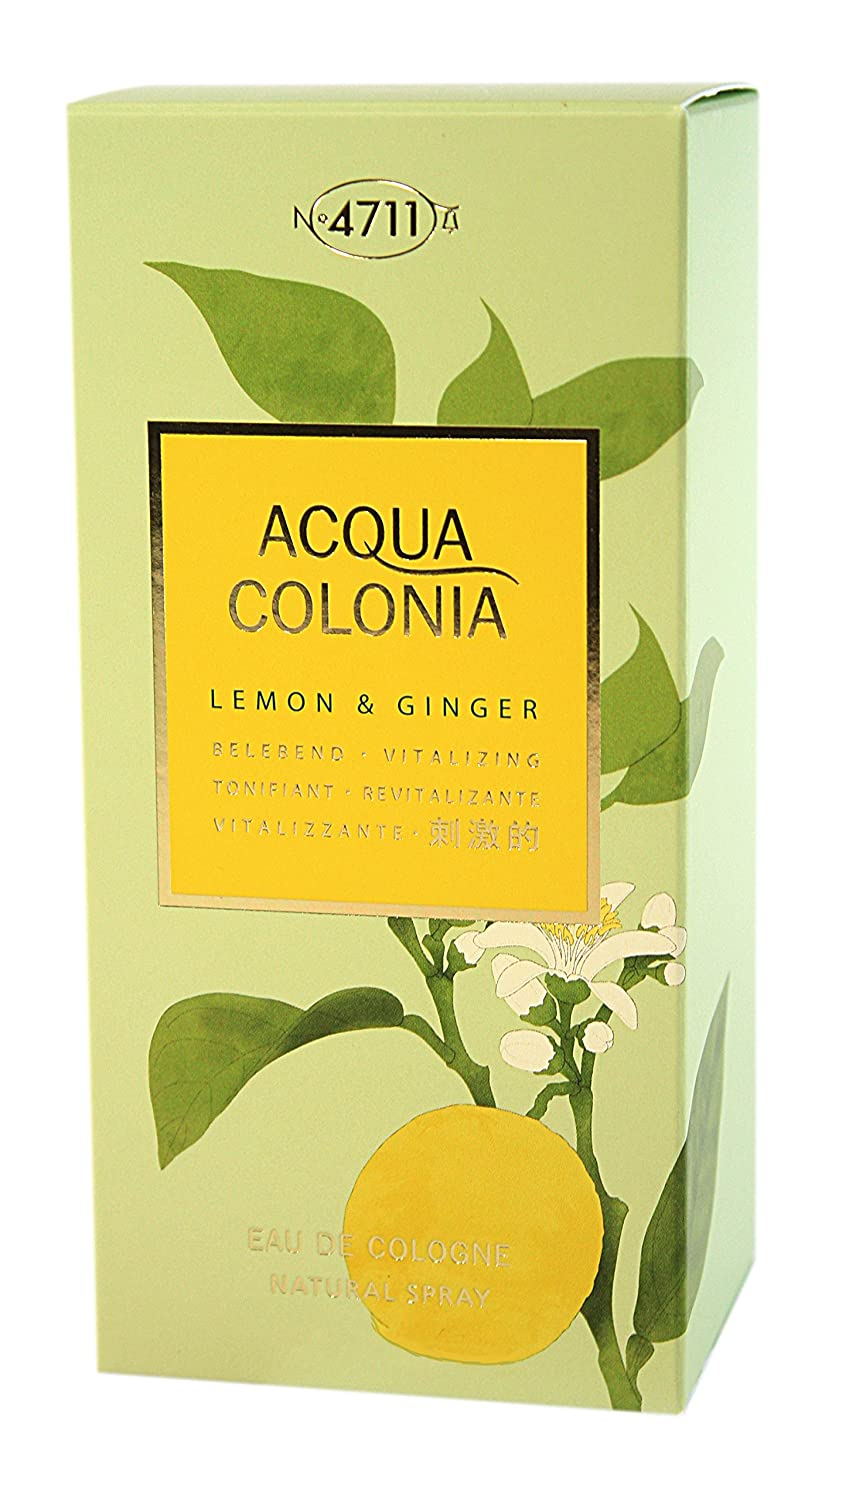 4711 Acqua Colonia Lemon & Ginger Agua de Colonia Vaporizador - 170 ml: Amazon.es: Belleza